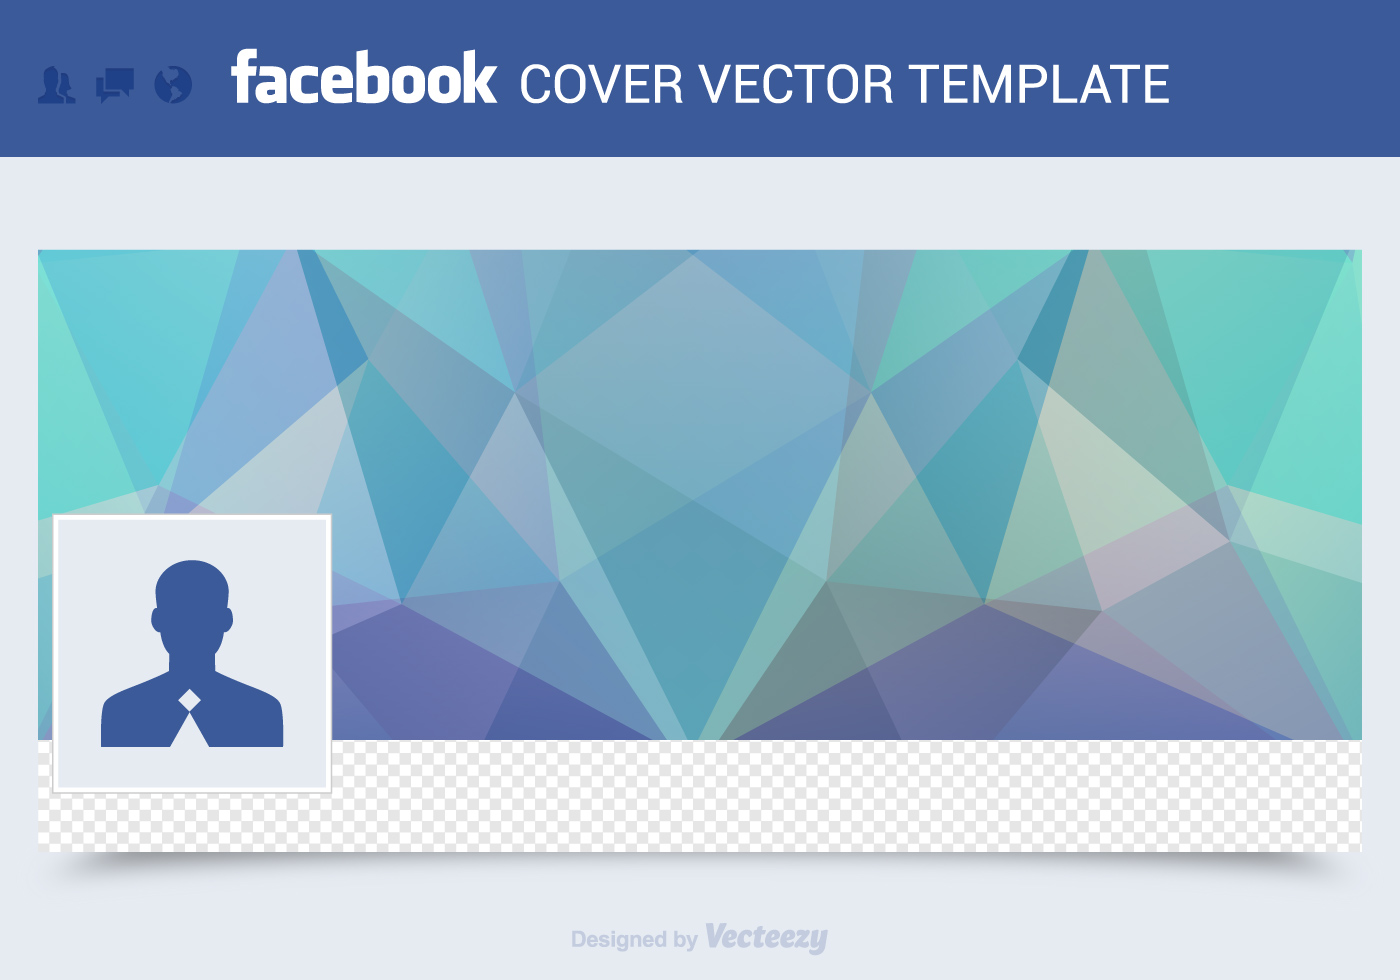 free facebook cover vector template download free vector art